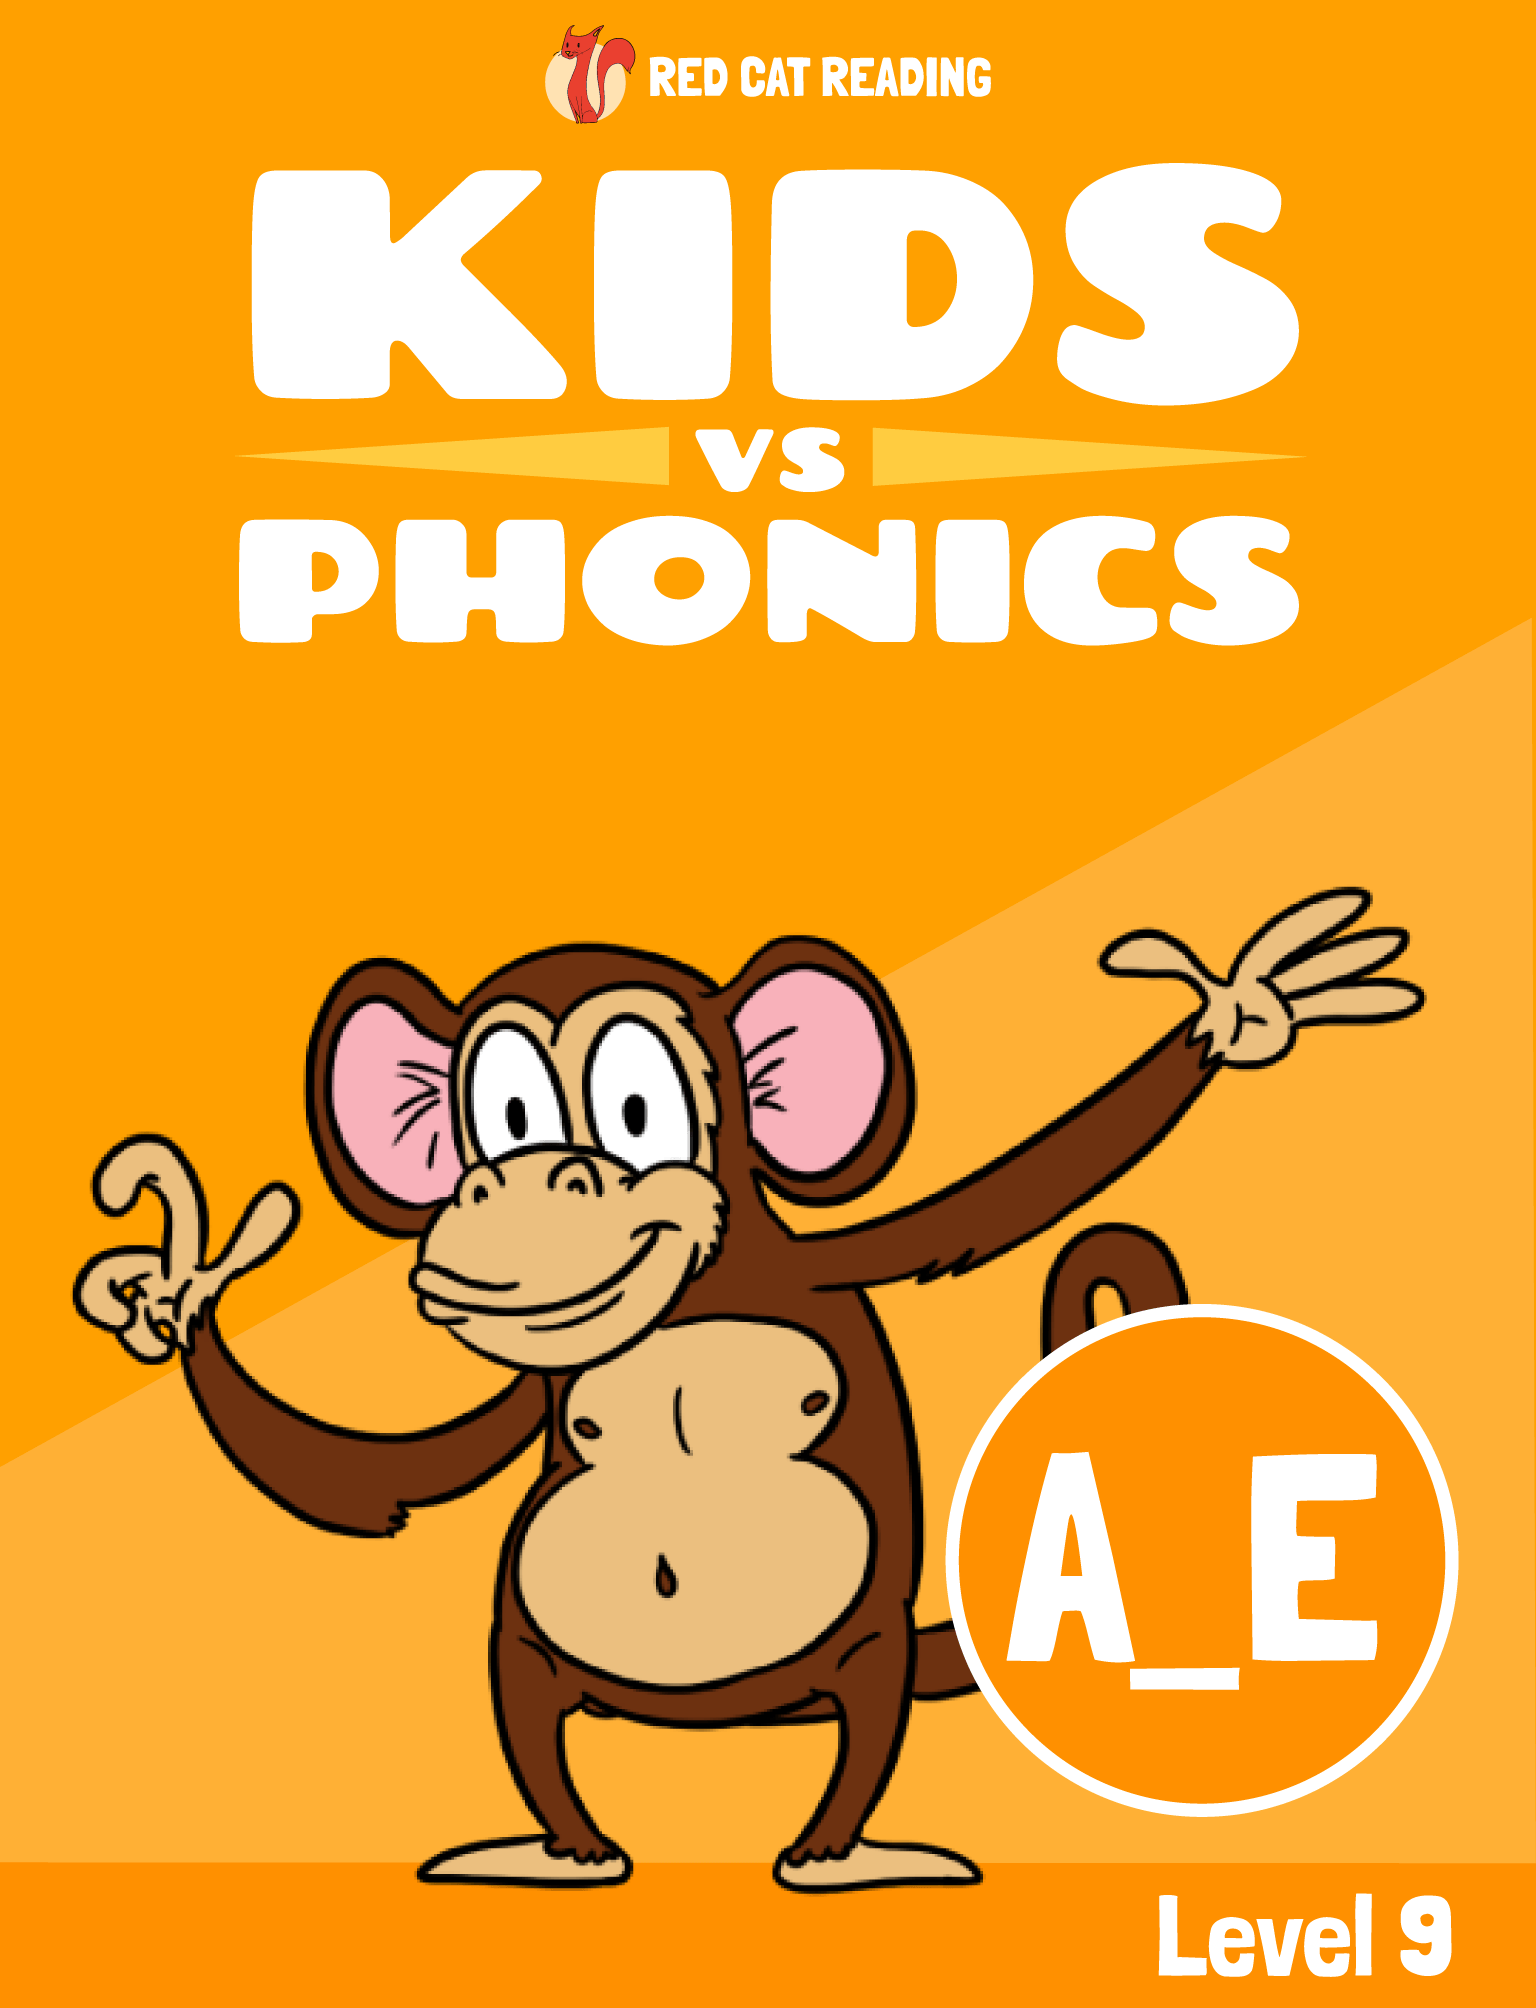 Red Cat Reading Kids vs Phonics Phonics Sound A_E Kids Learn to Read